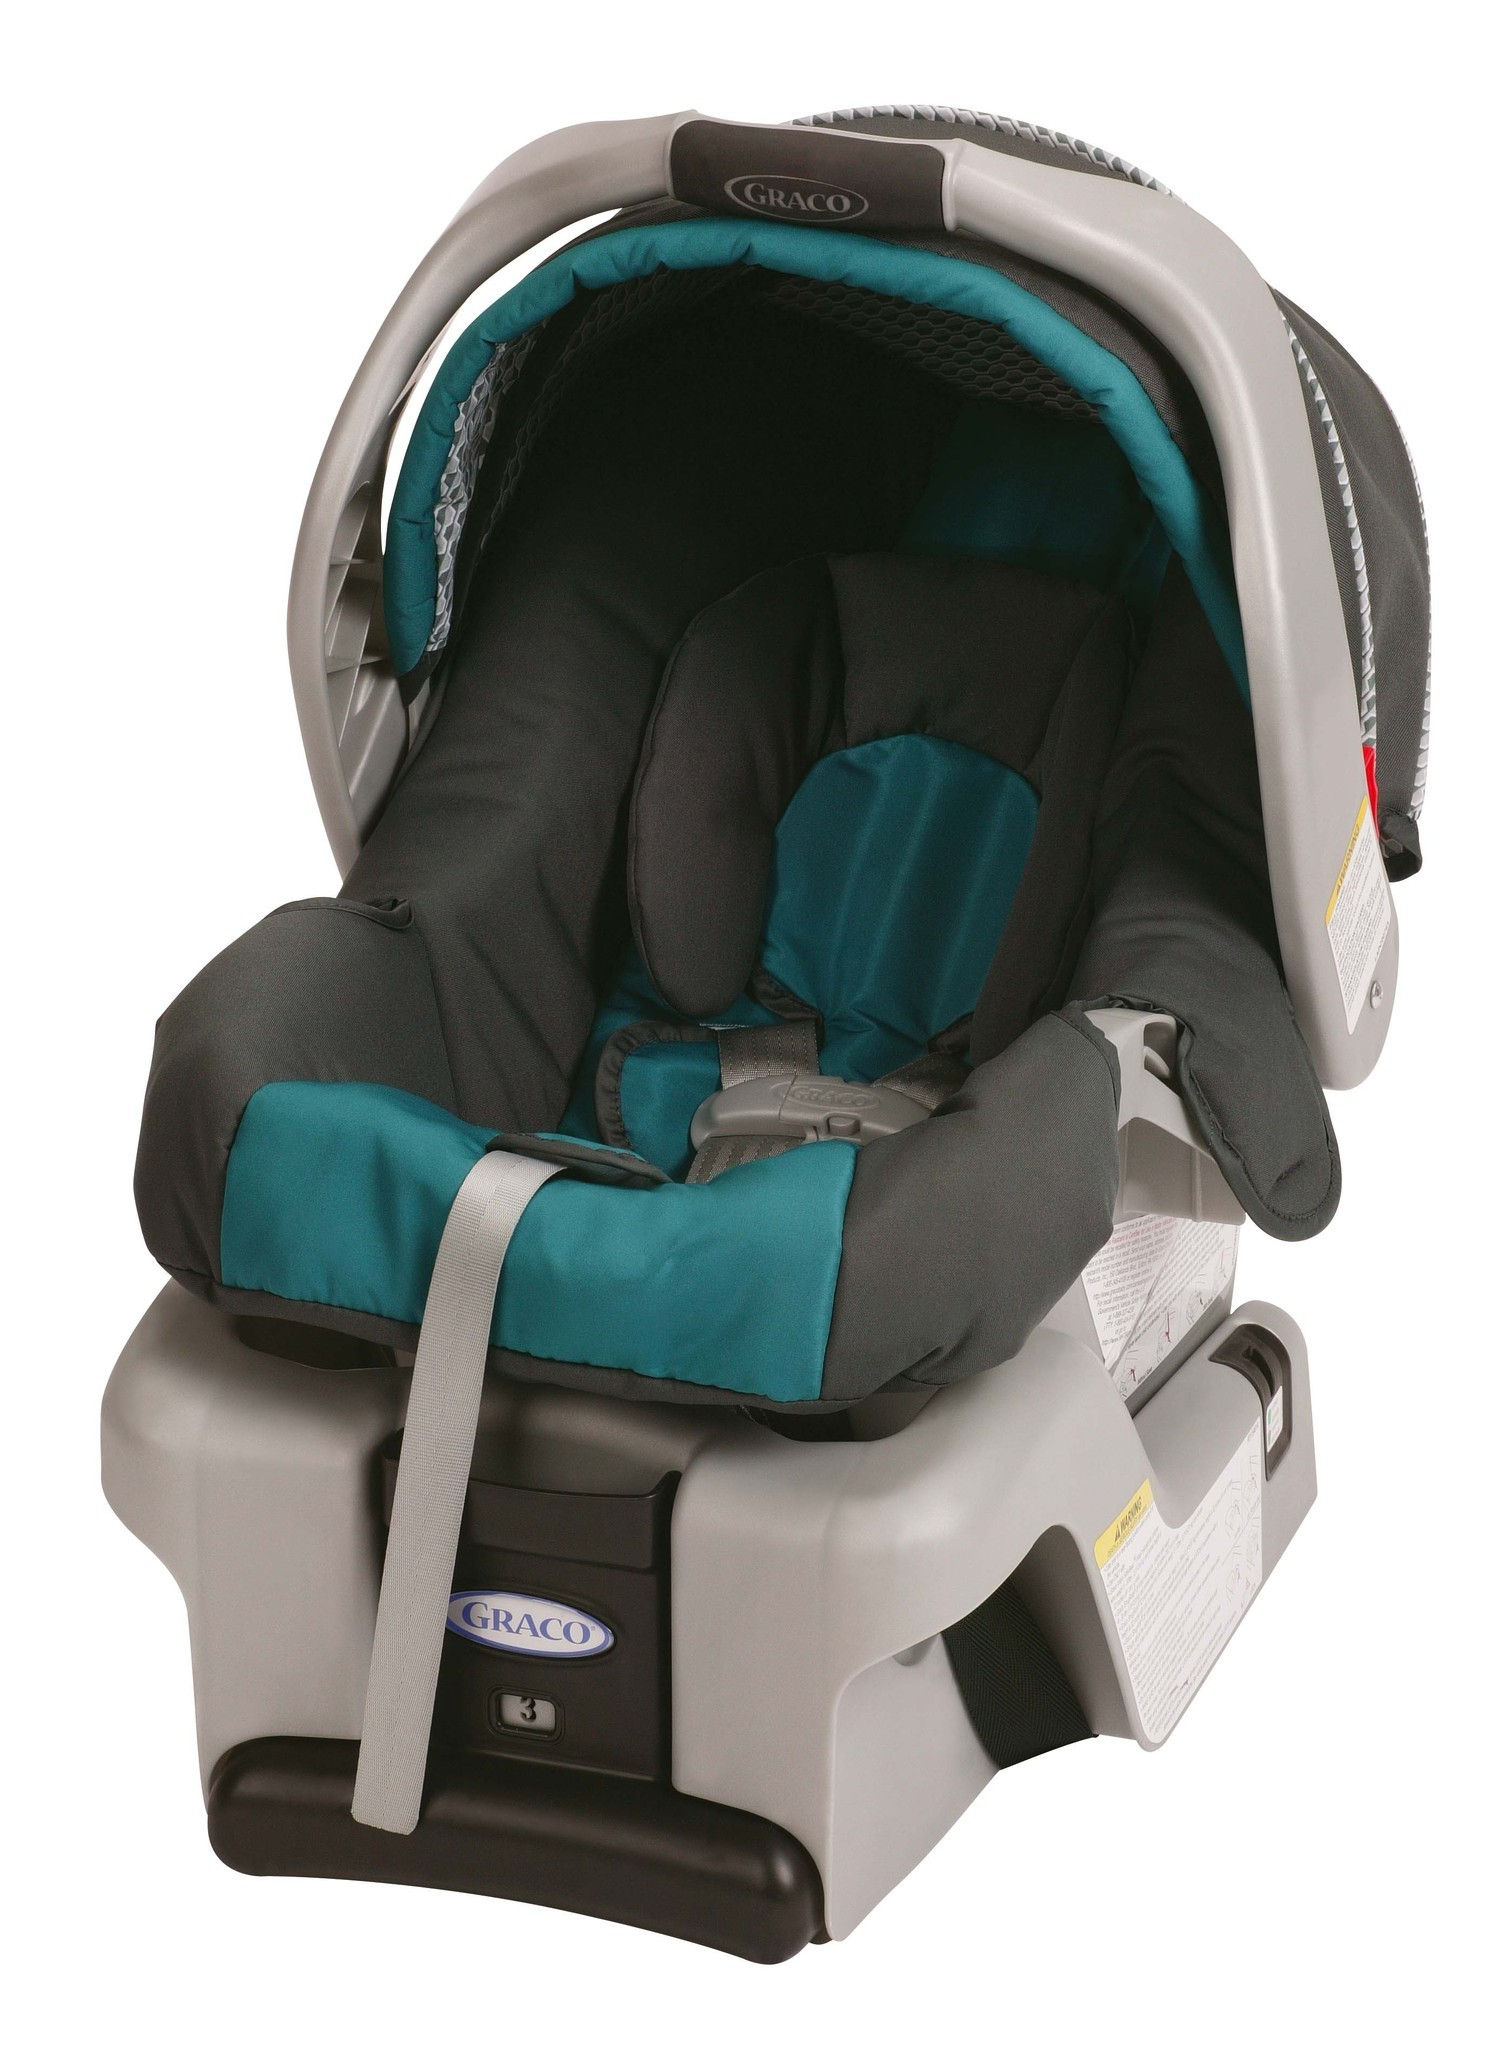 Graco Car Seat South Africa